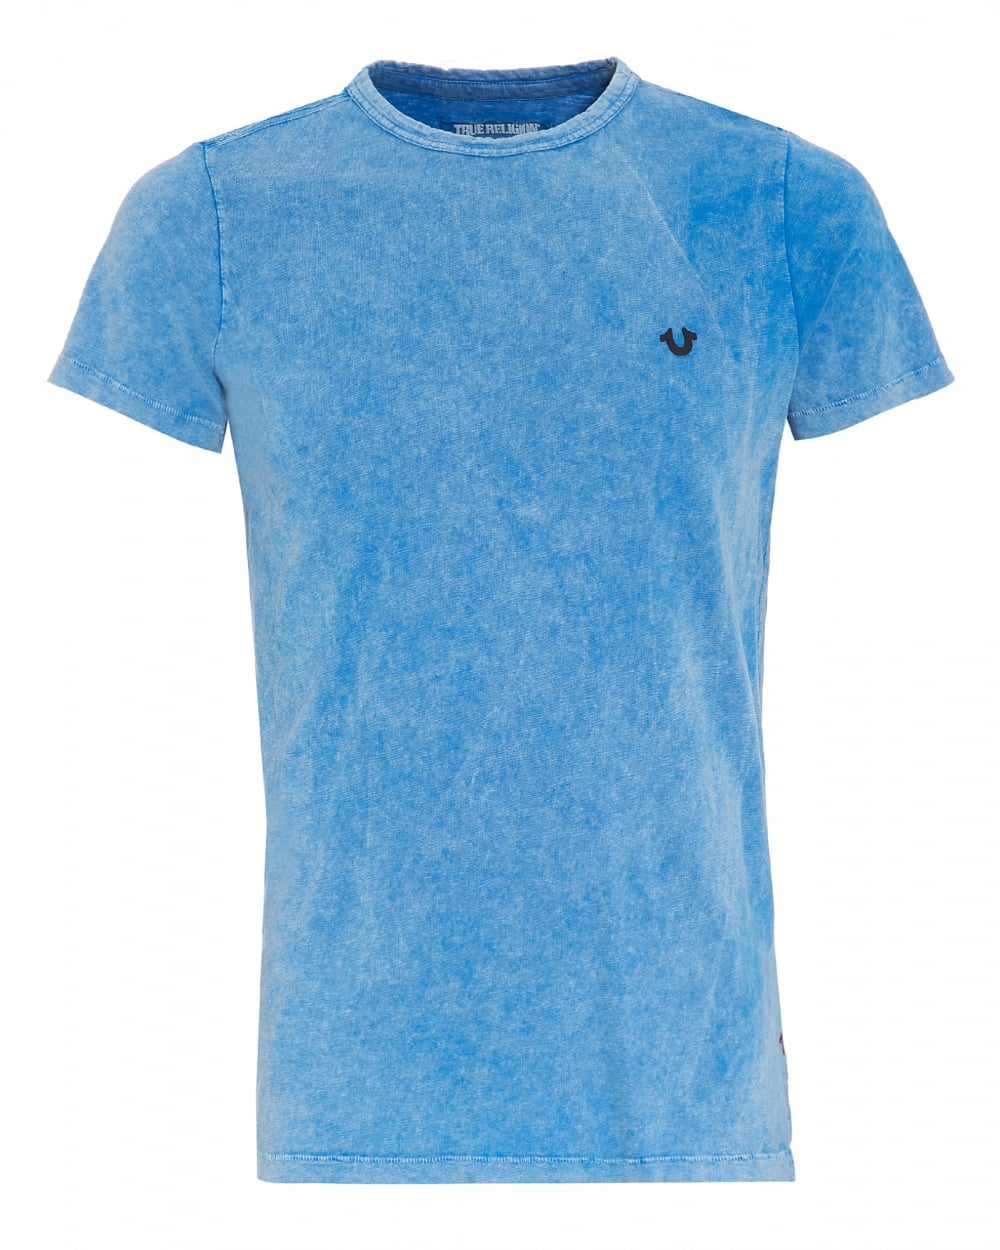 True religion jeans mens metal badge t shirt french blue tee for French blue t shirt